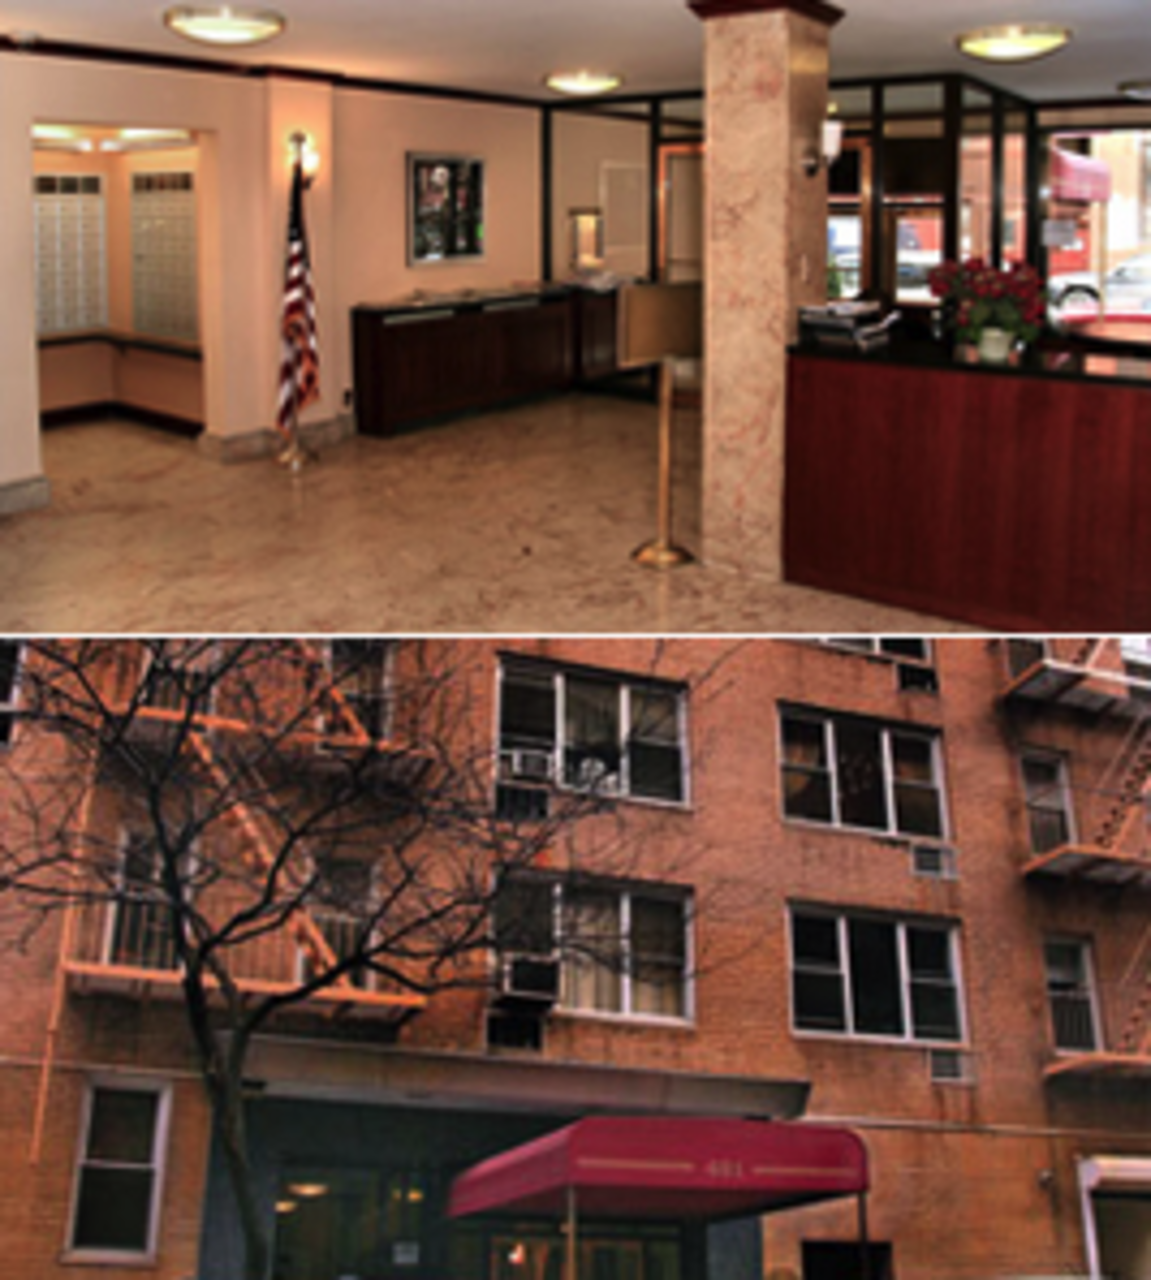 Houses For Rent Sites: 401 West 56th Street Rentals